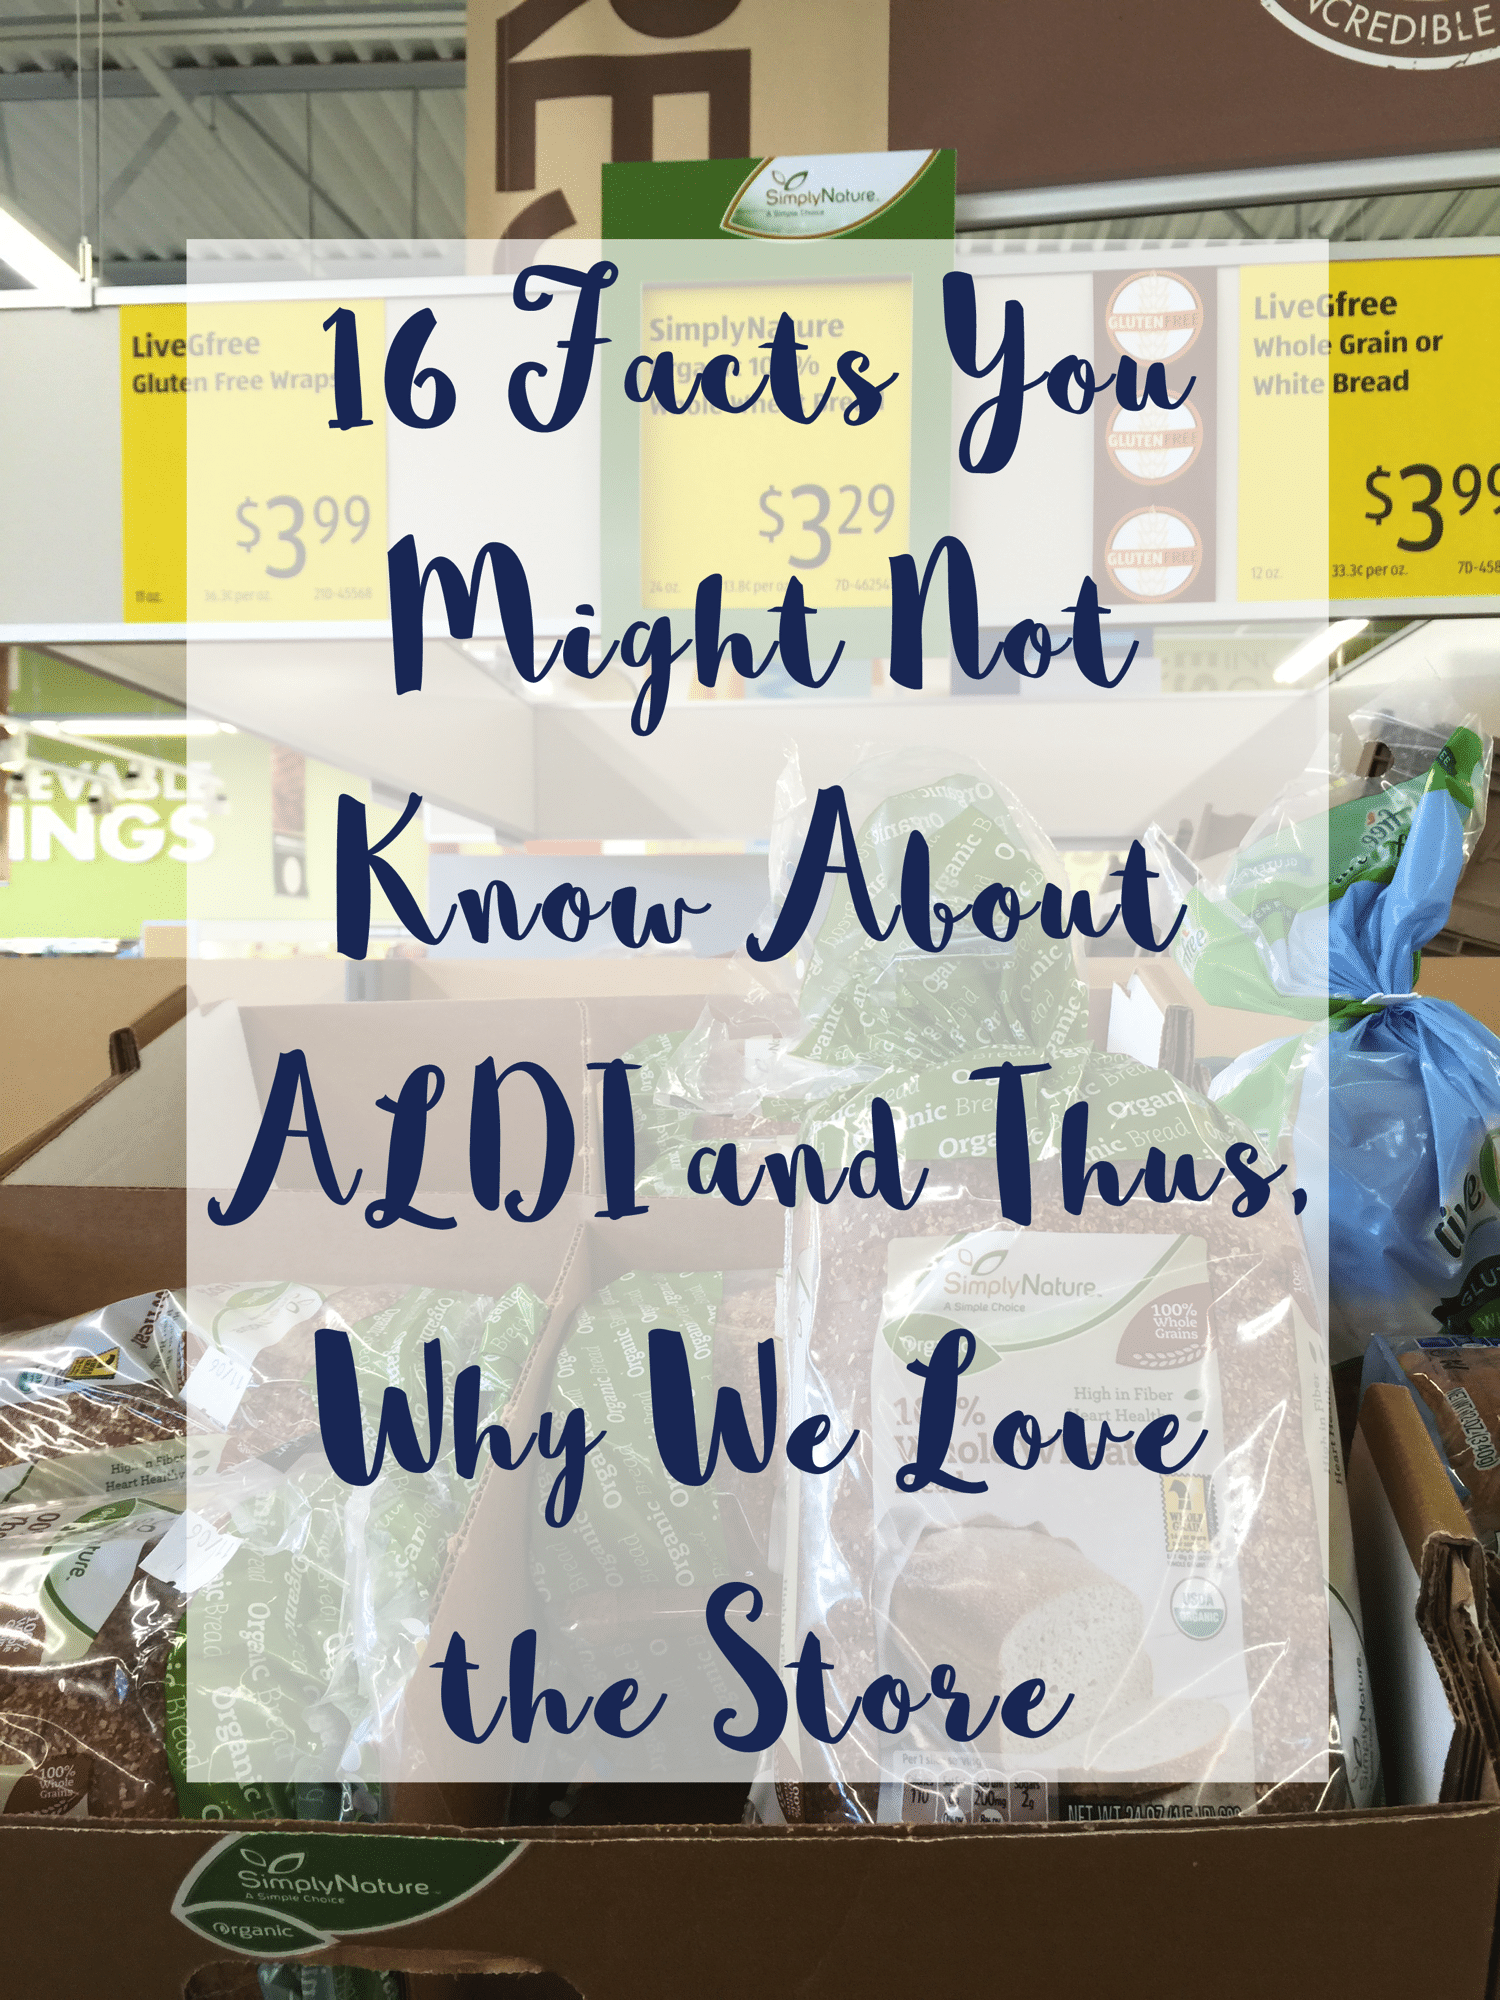 16 Facts You Might Not Know About ALDI and Thus, Why We Love the Store